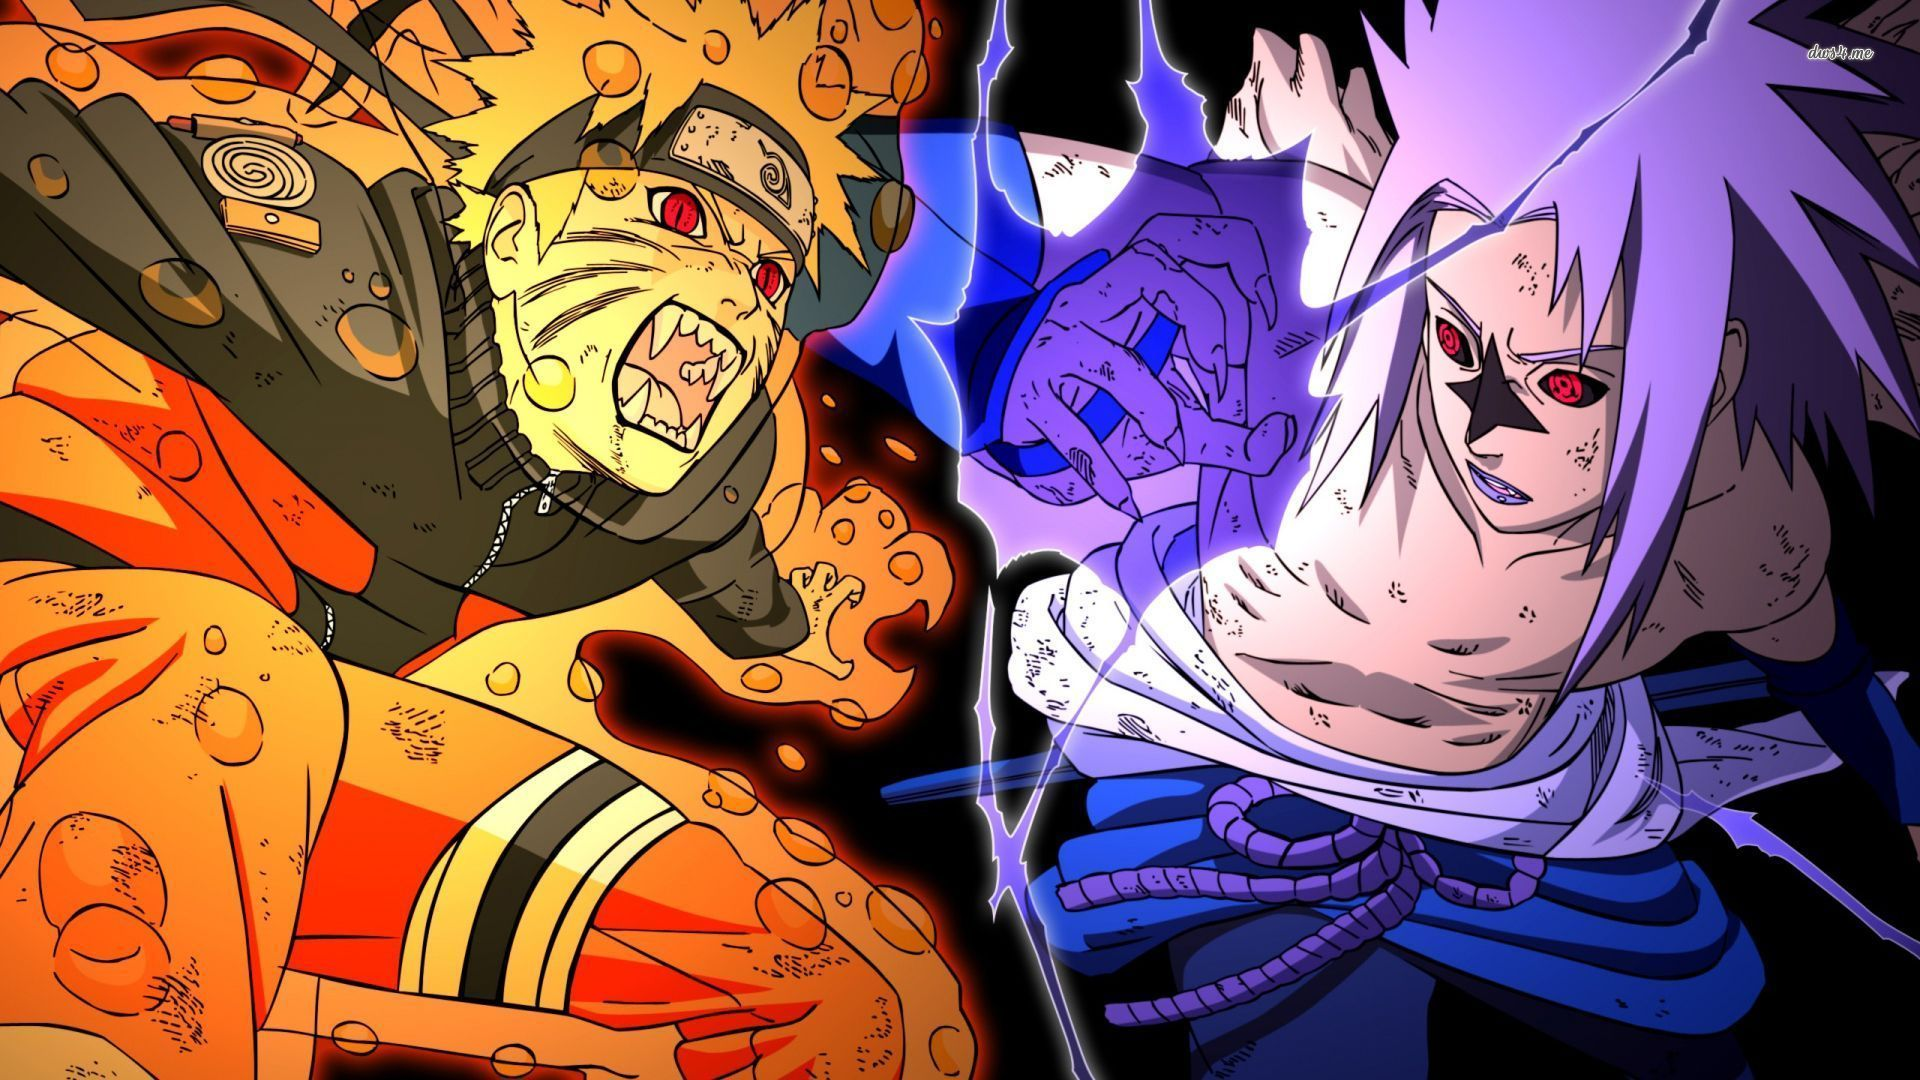 Download Naruto Shippuden Wallpaper 1920x1080 Full Hd Wallpapers Gambar Karakter Desain Karakter Gambar